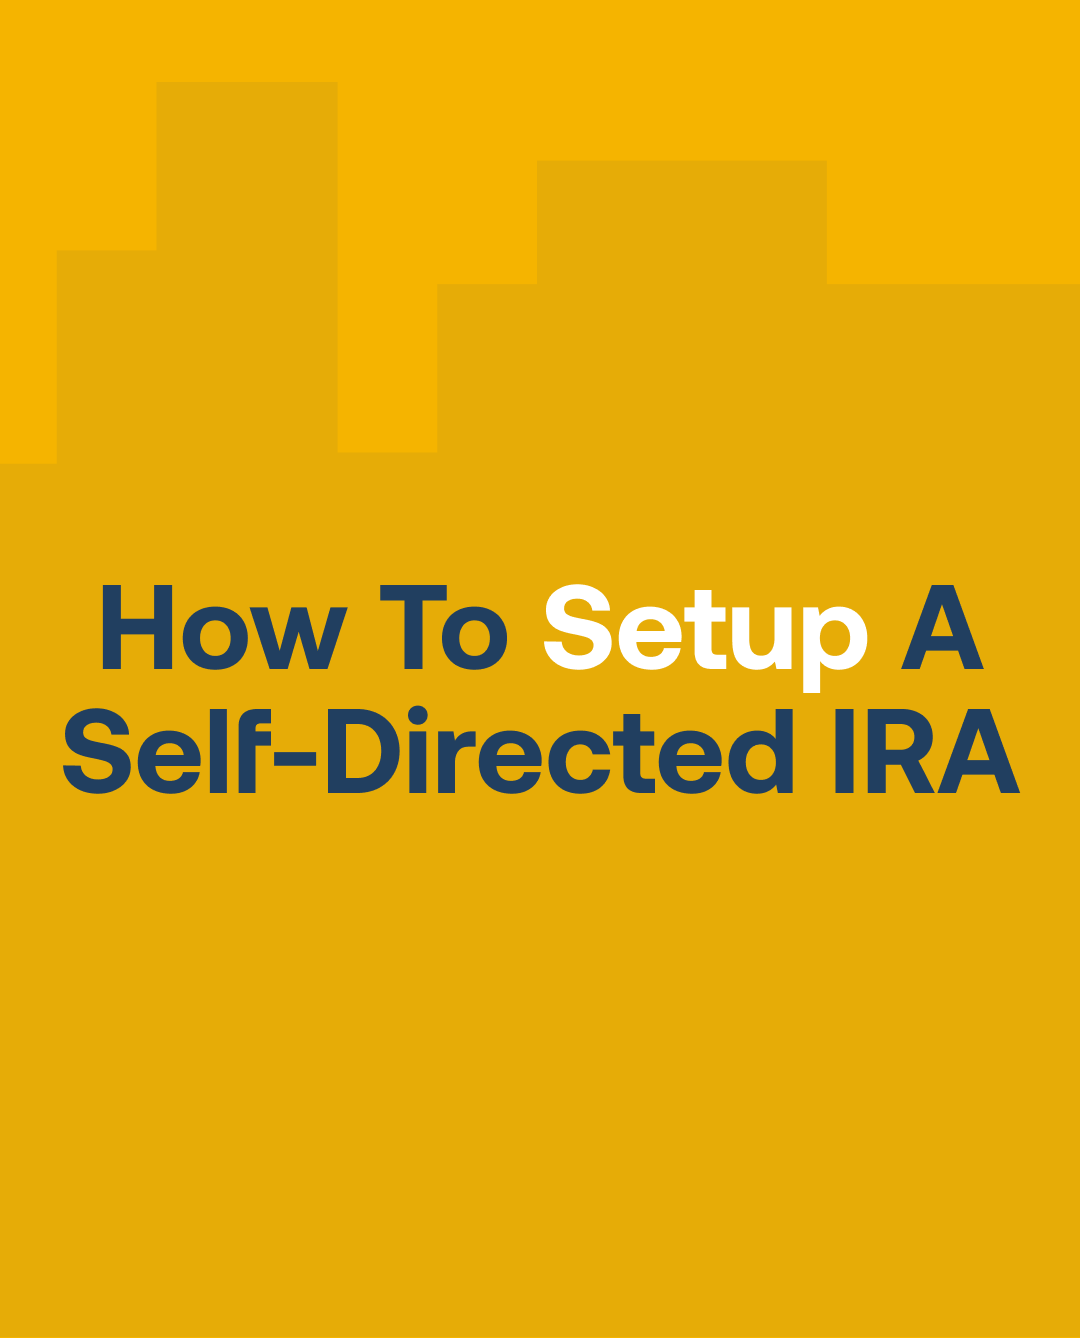 How To Setup A Self-Directed IRA